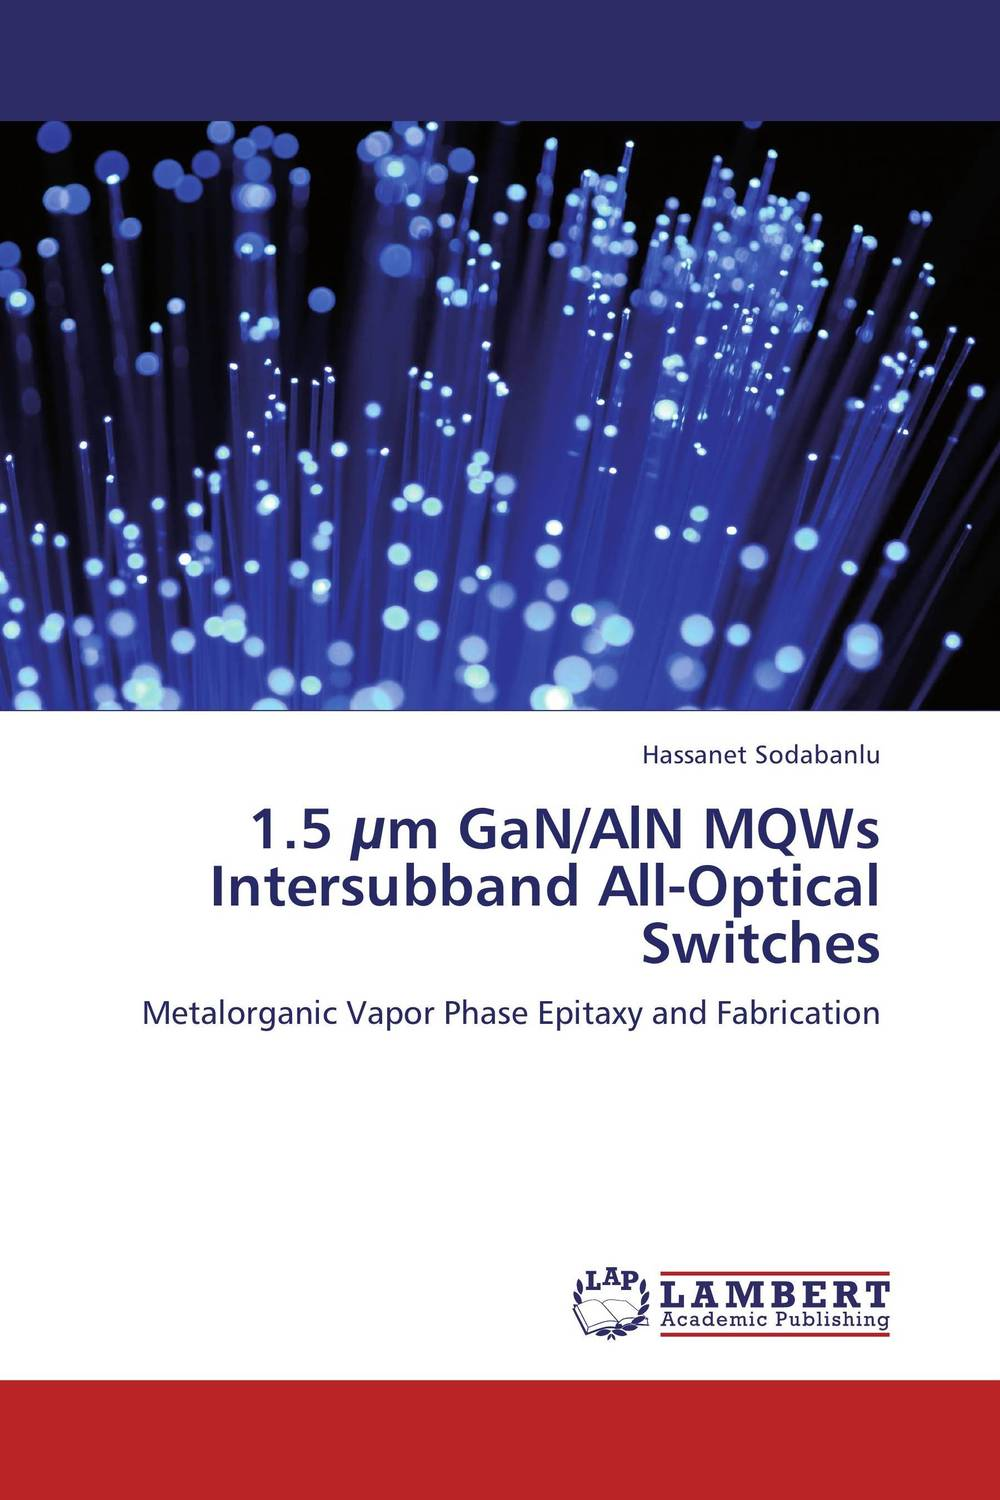 1.5 µm GaN/AlN MQWs Intersubband All-Optical Switches katsunari okamoto fundamentals of optical waveguides